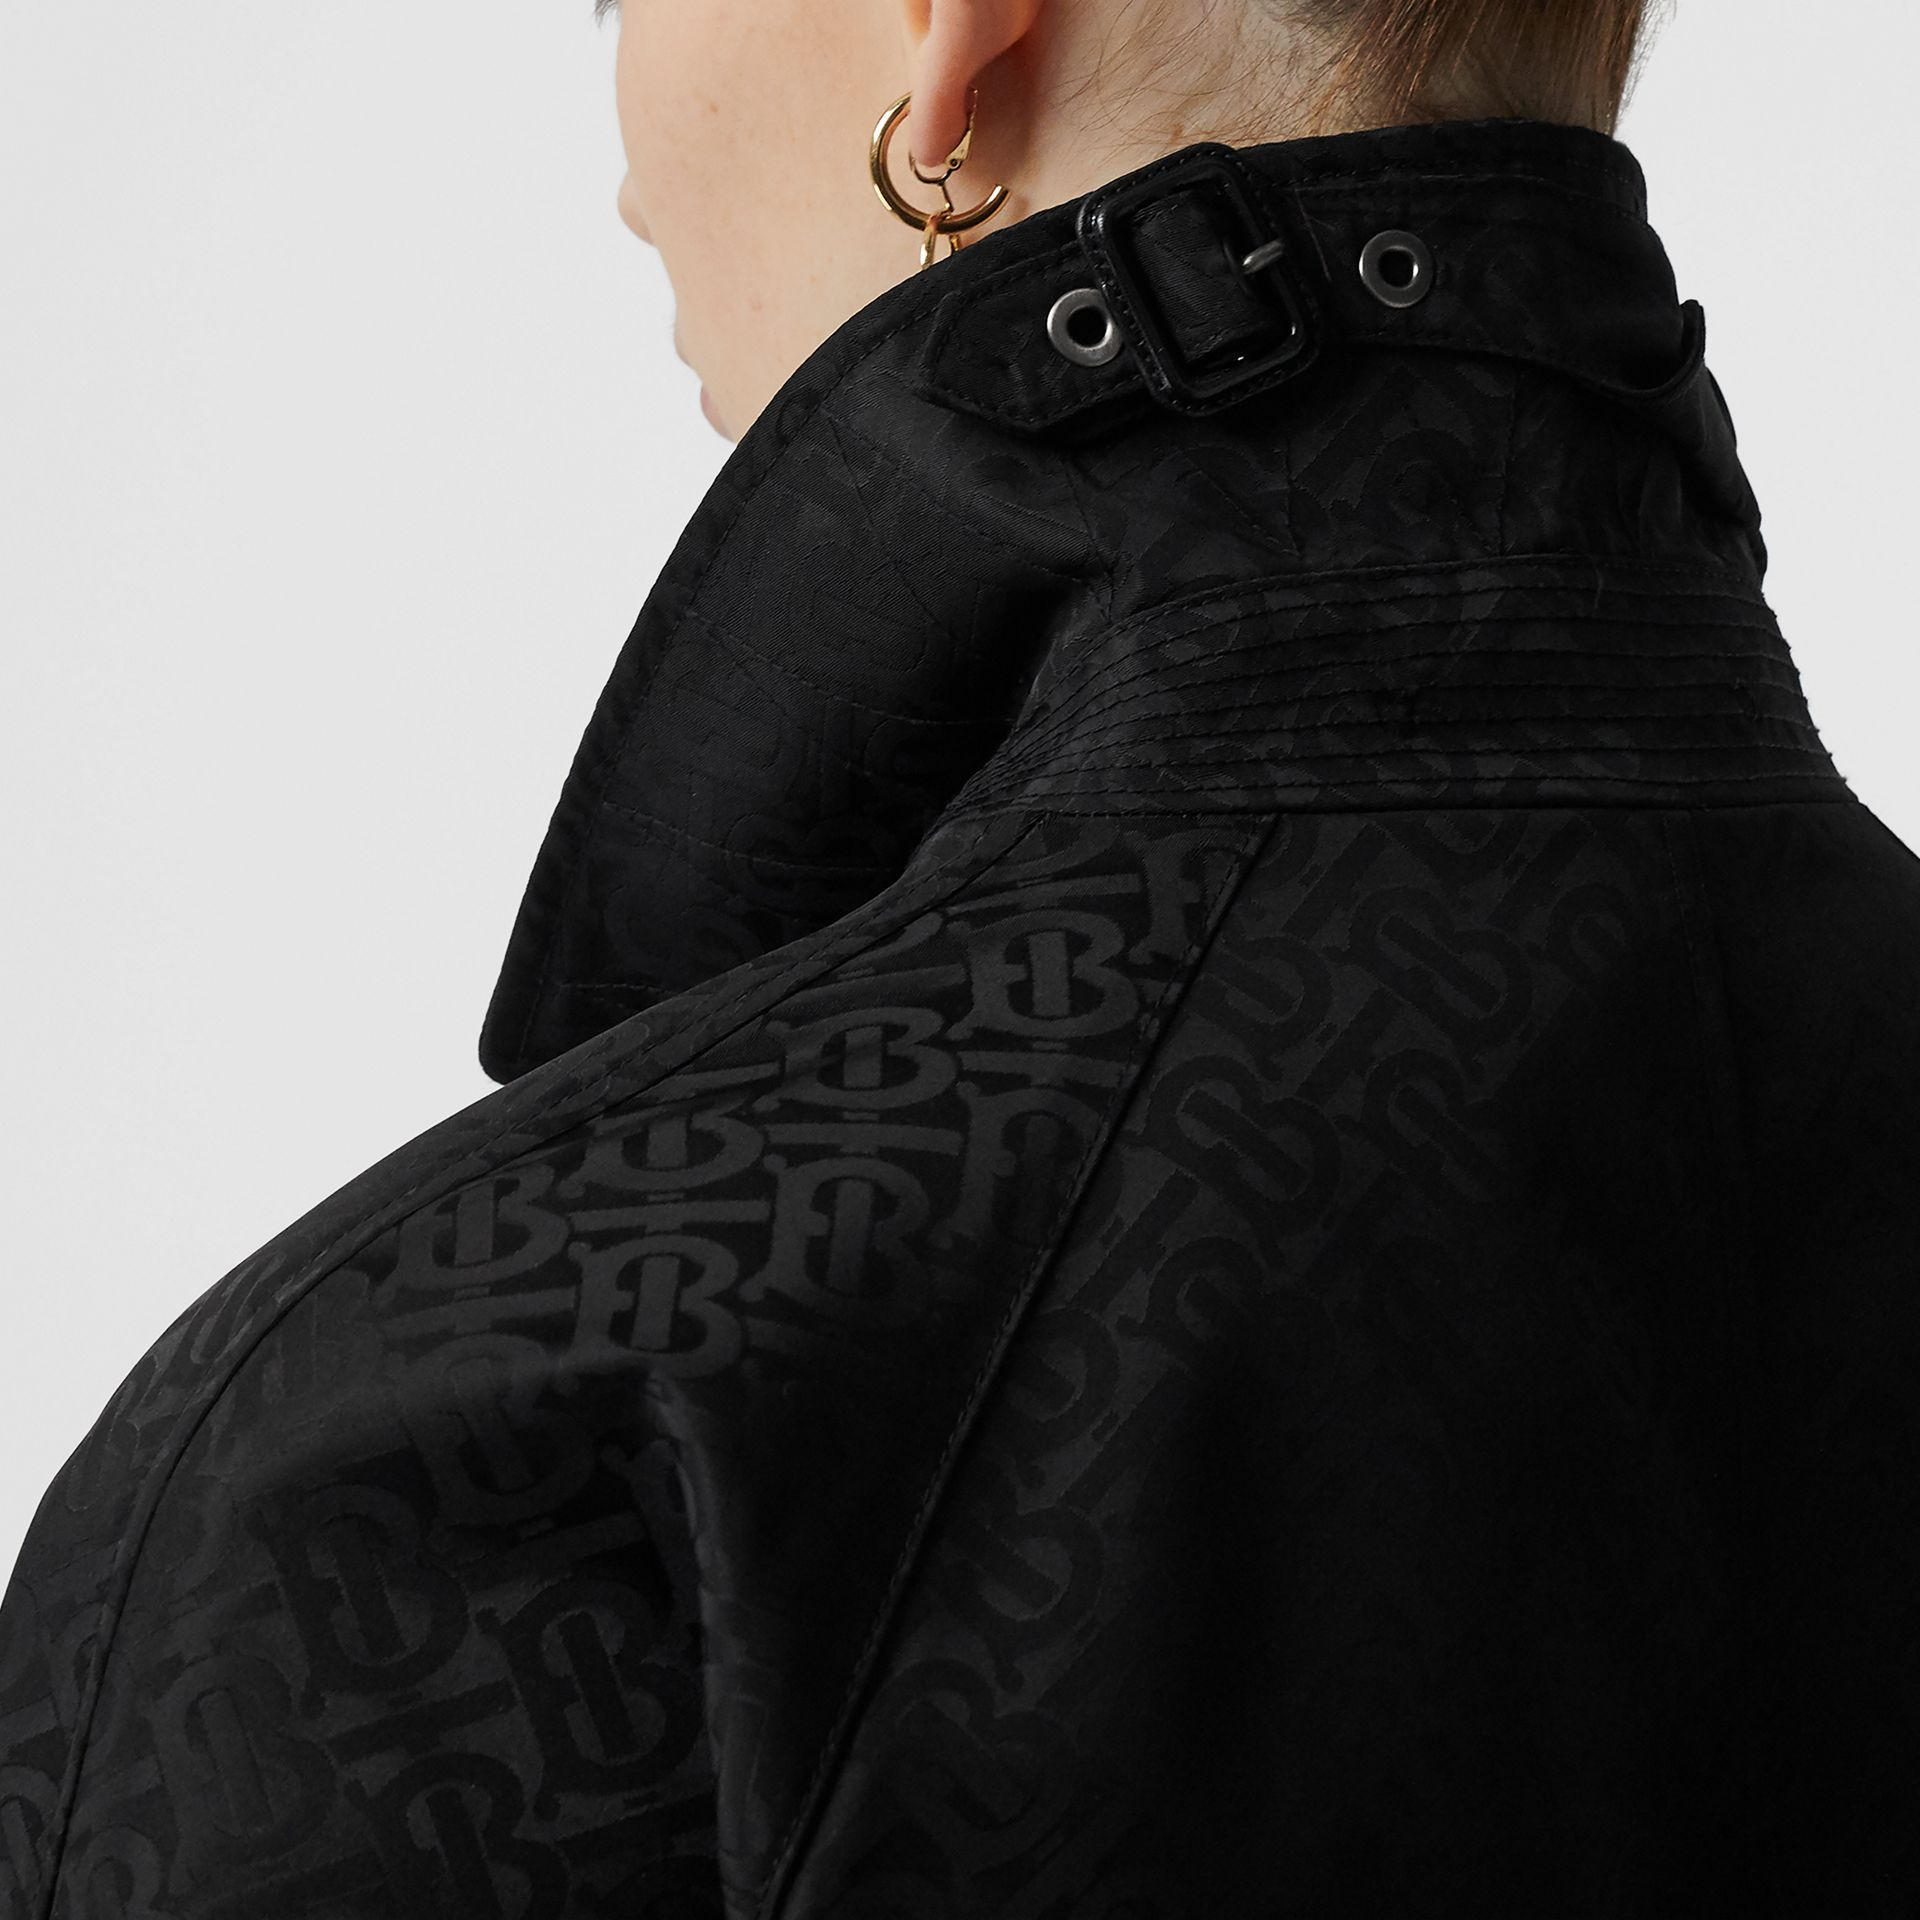 Monogram ECONYL® Jacquard Car Coat in Black - Women | Burberry United States - gallery image 5